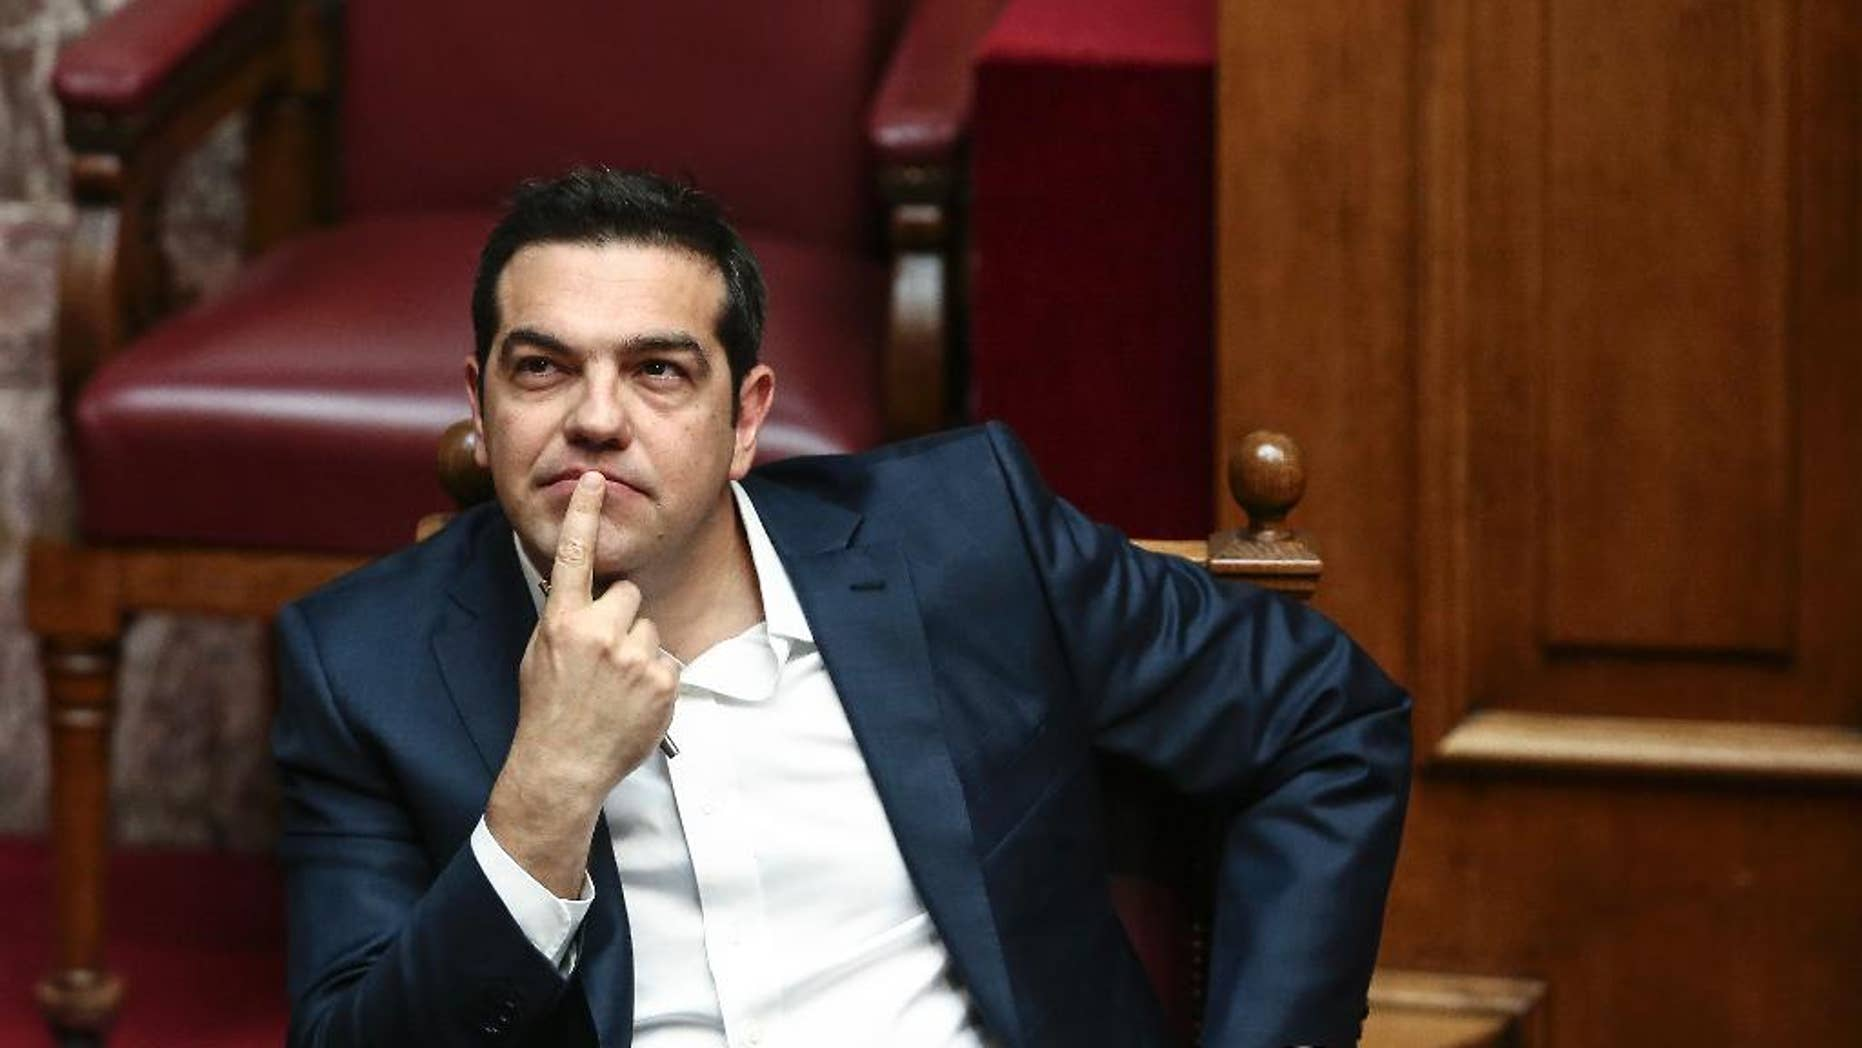 Greece's Prime Minister Alexis Tsipras attends a parliamentary session in Athens, Sunday, May 22, 2016.  Greek parliament votes on a bill ahead of a Eurogroup meeting next week which is likely to unlock bailout funds for the country. (AP Photo/ Yorgos Karahalis )